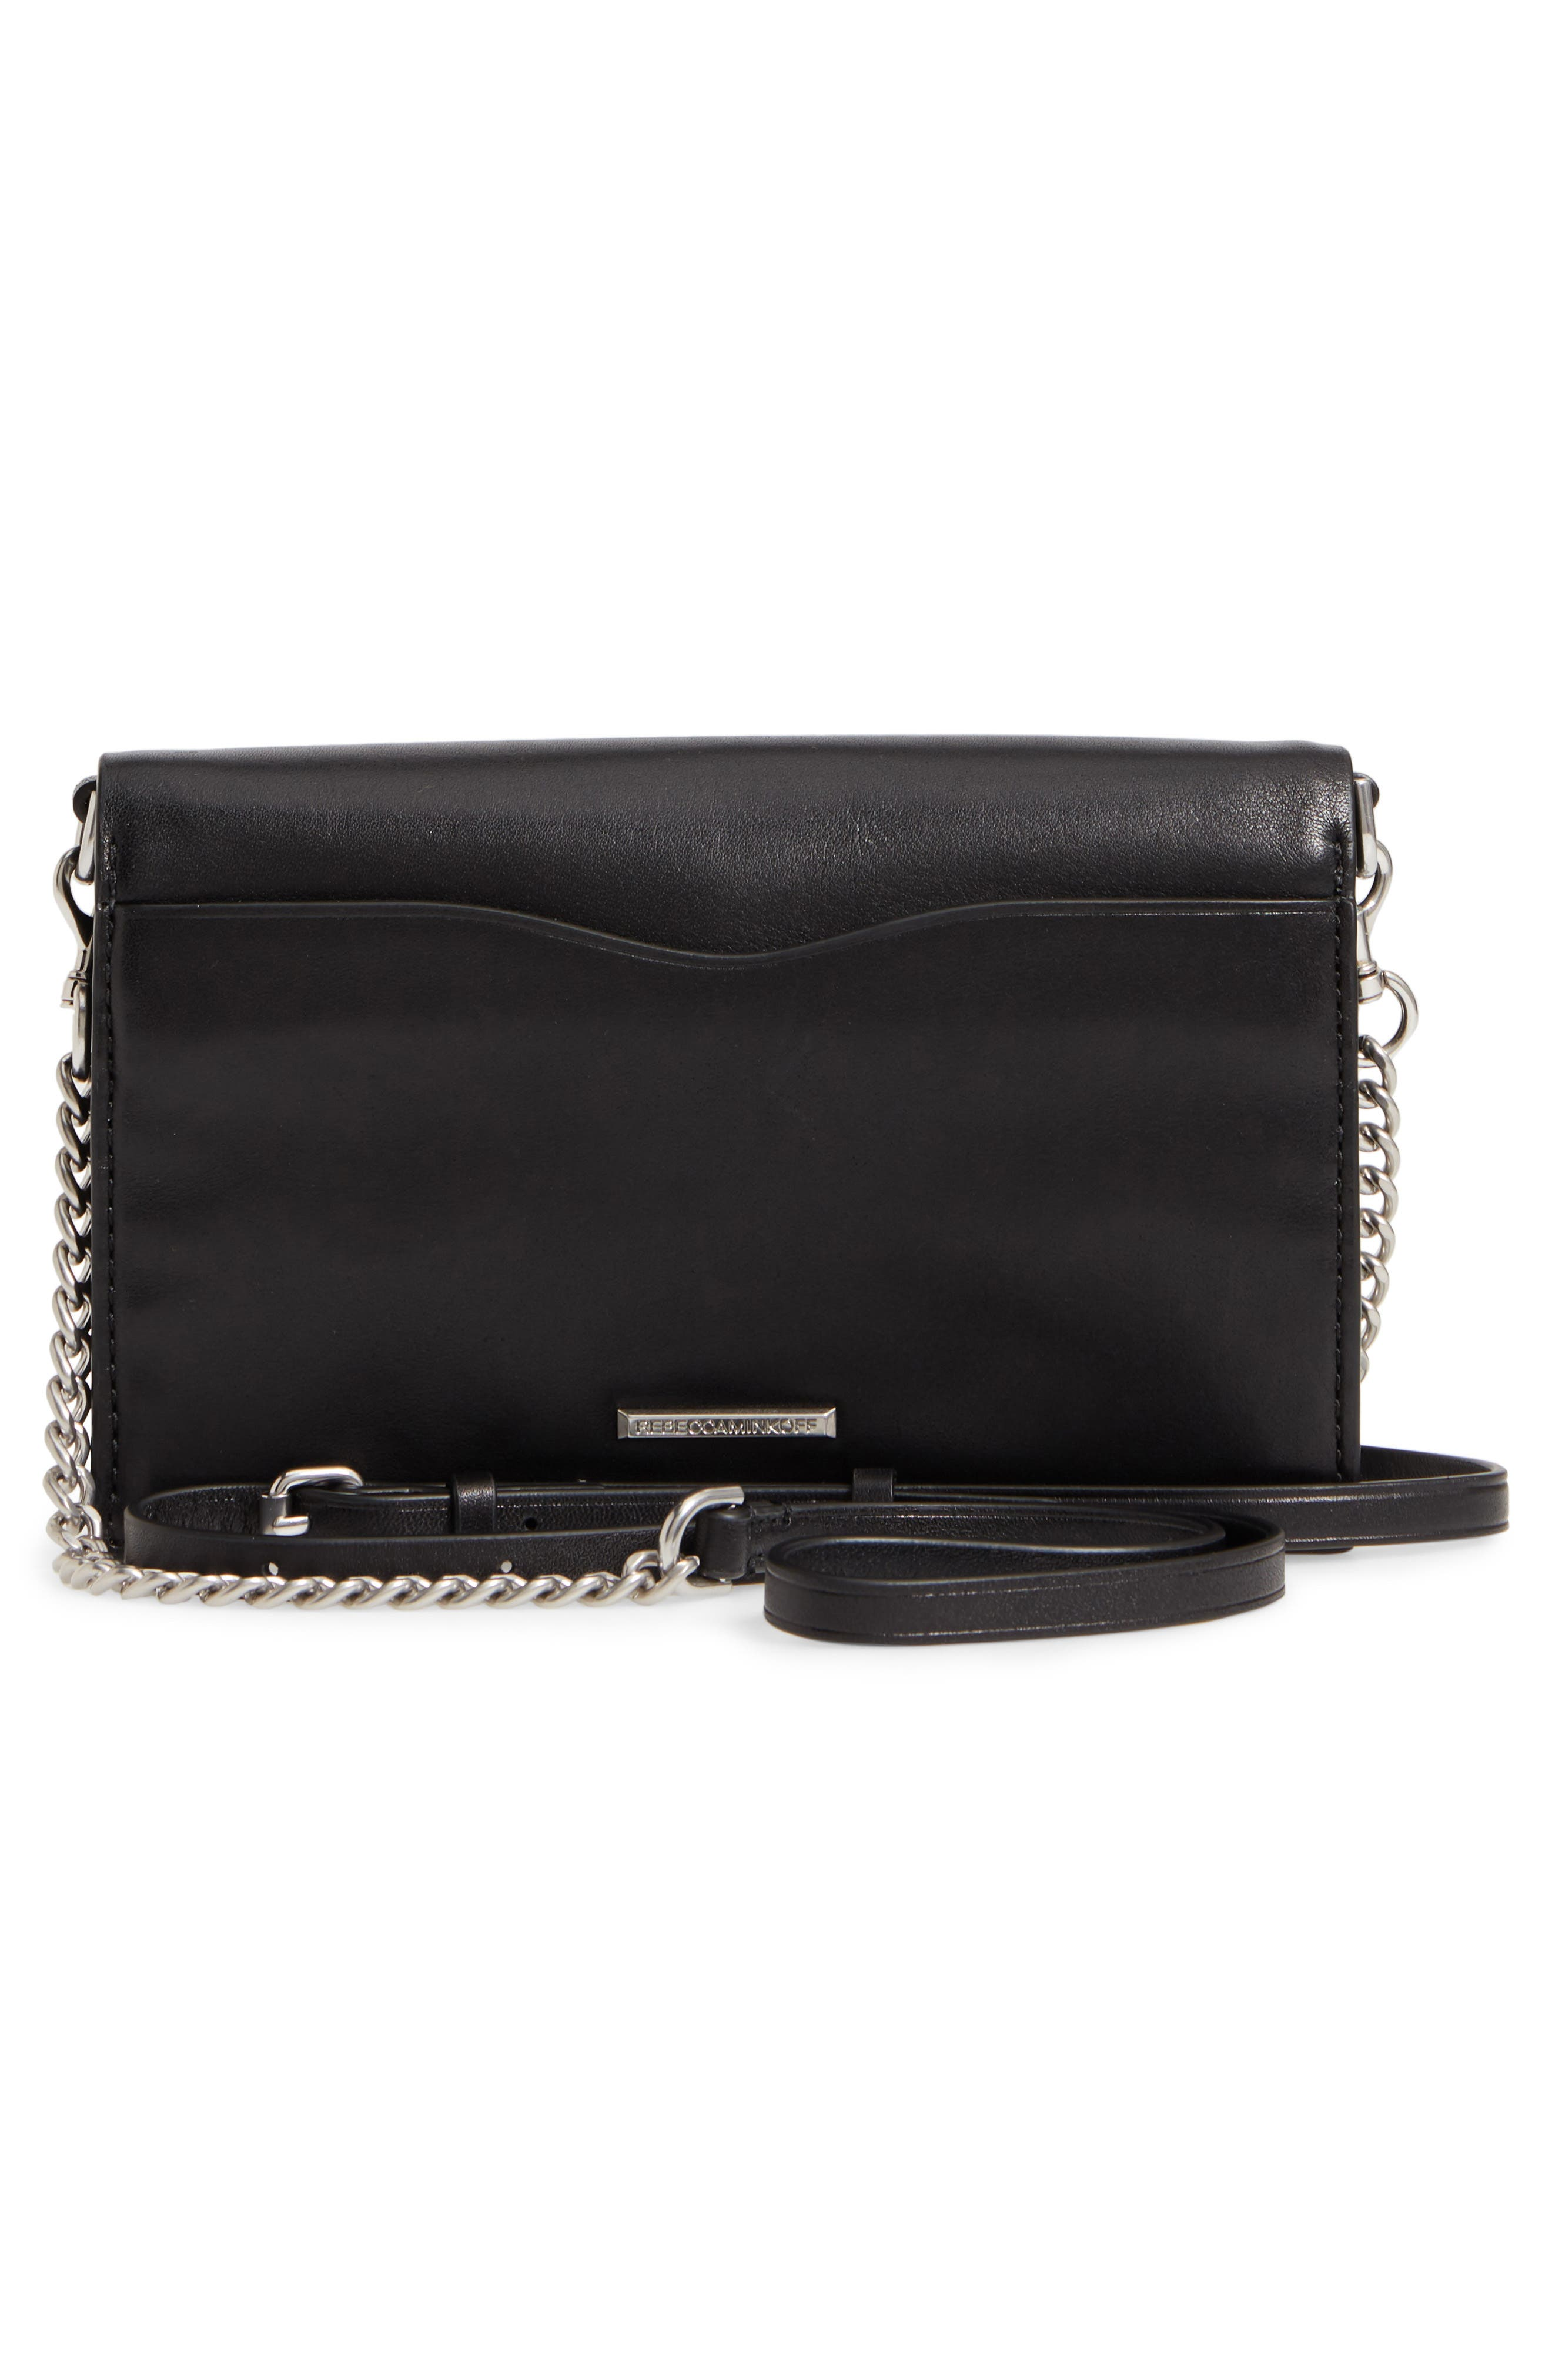 Blythe Studded Leather Crossbody Wallet,                             Alternate thumbnail 3, color,                             001